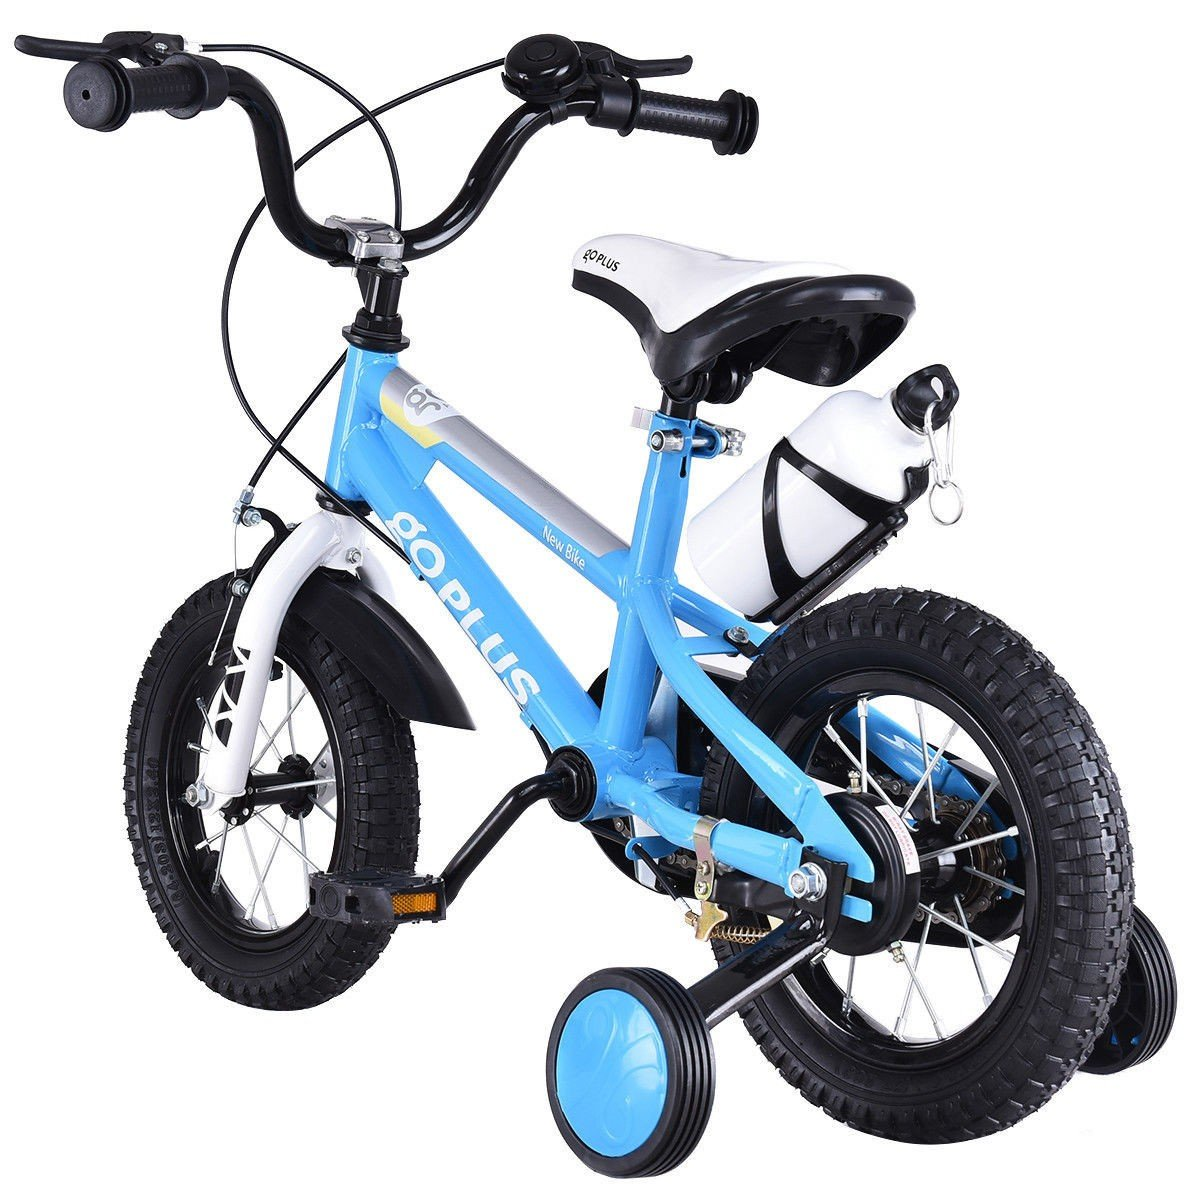 MD Group Kids Bicycle 20'' Adjustable Freestyle Boys & Girls Blue Metal w/ Training Wheels by MD Group (Image #3)